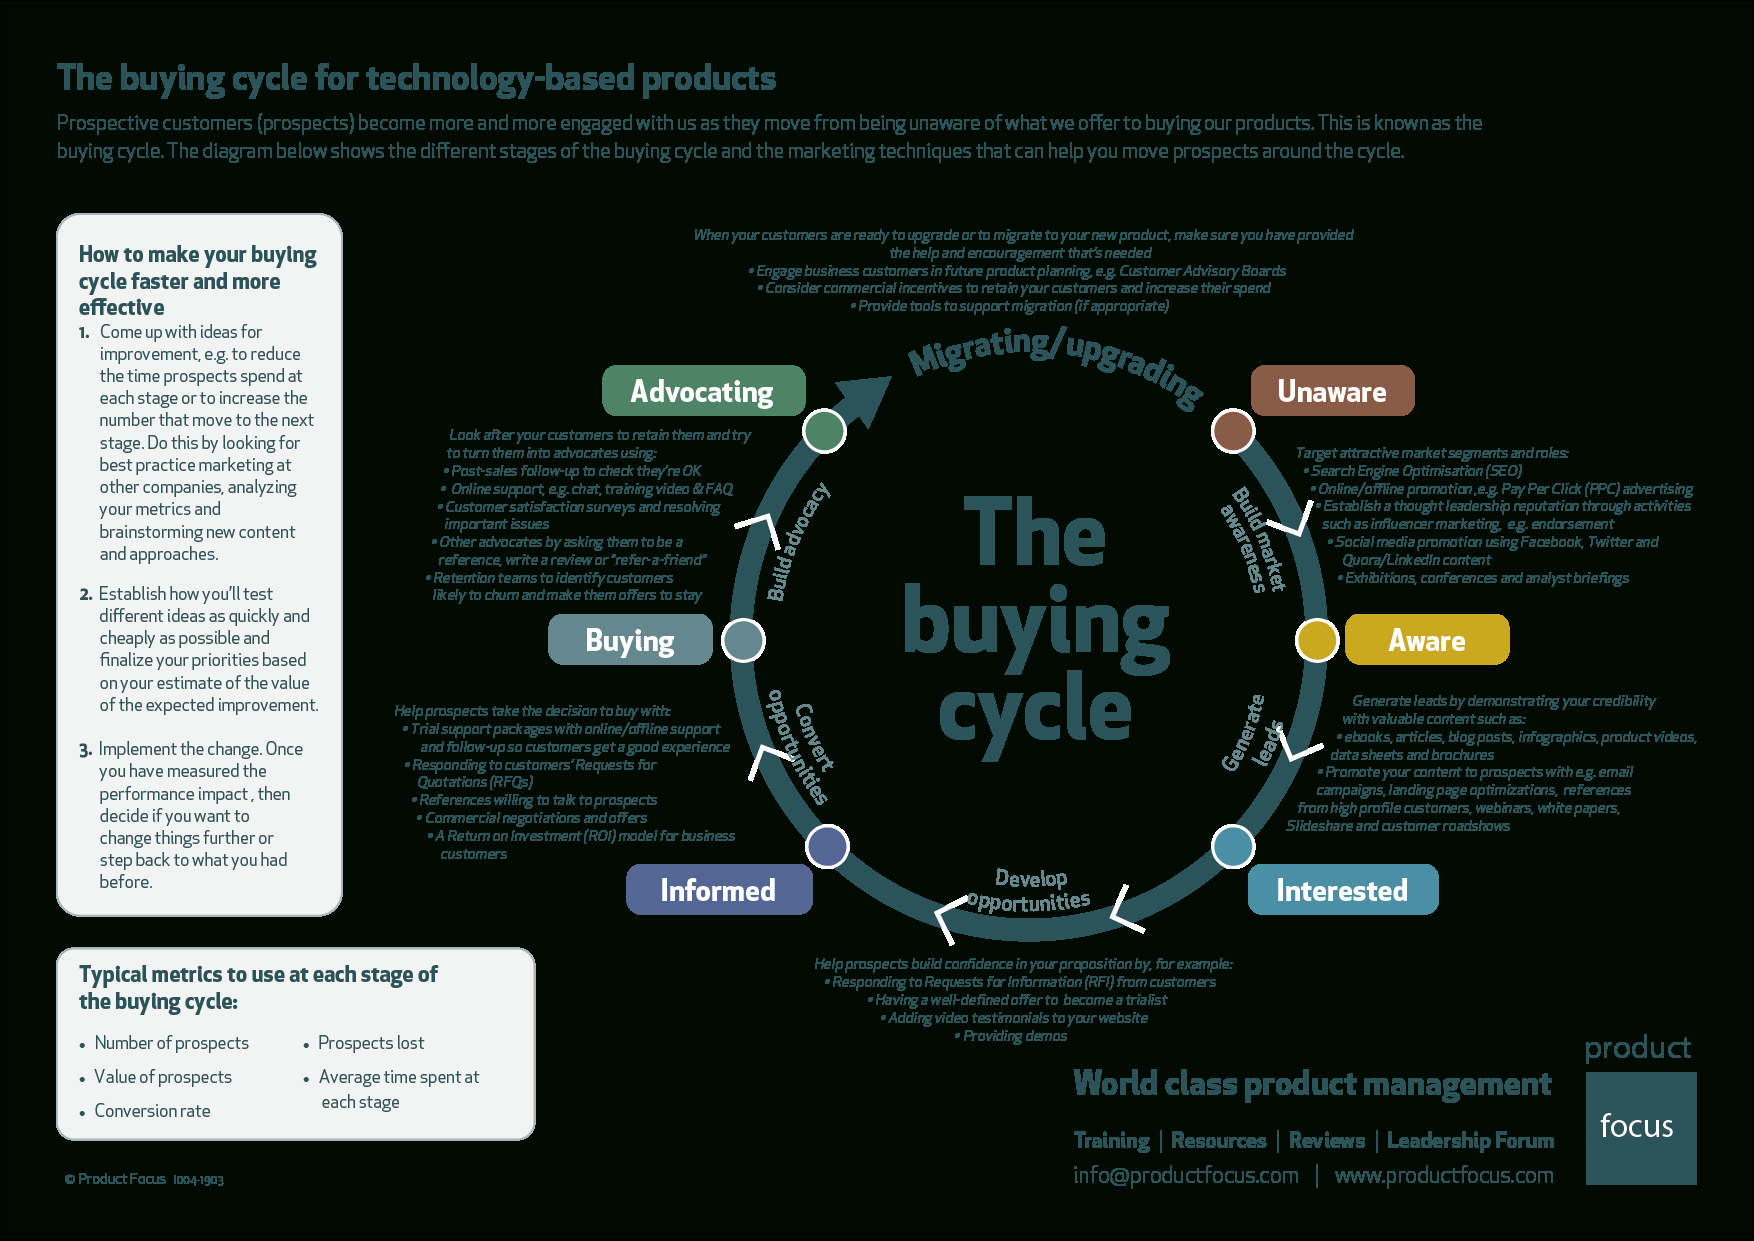 Product Management Buying Cycle | Product Focus destiné Musique Cycle 2